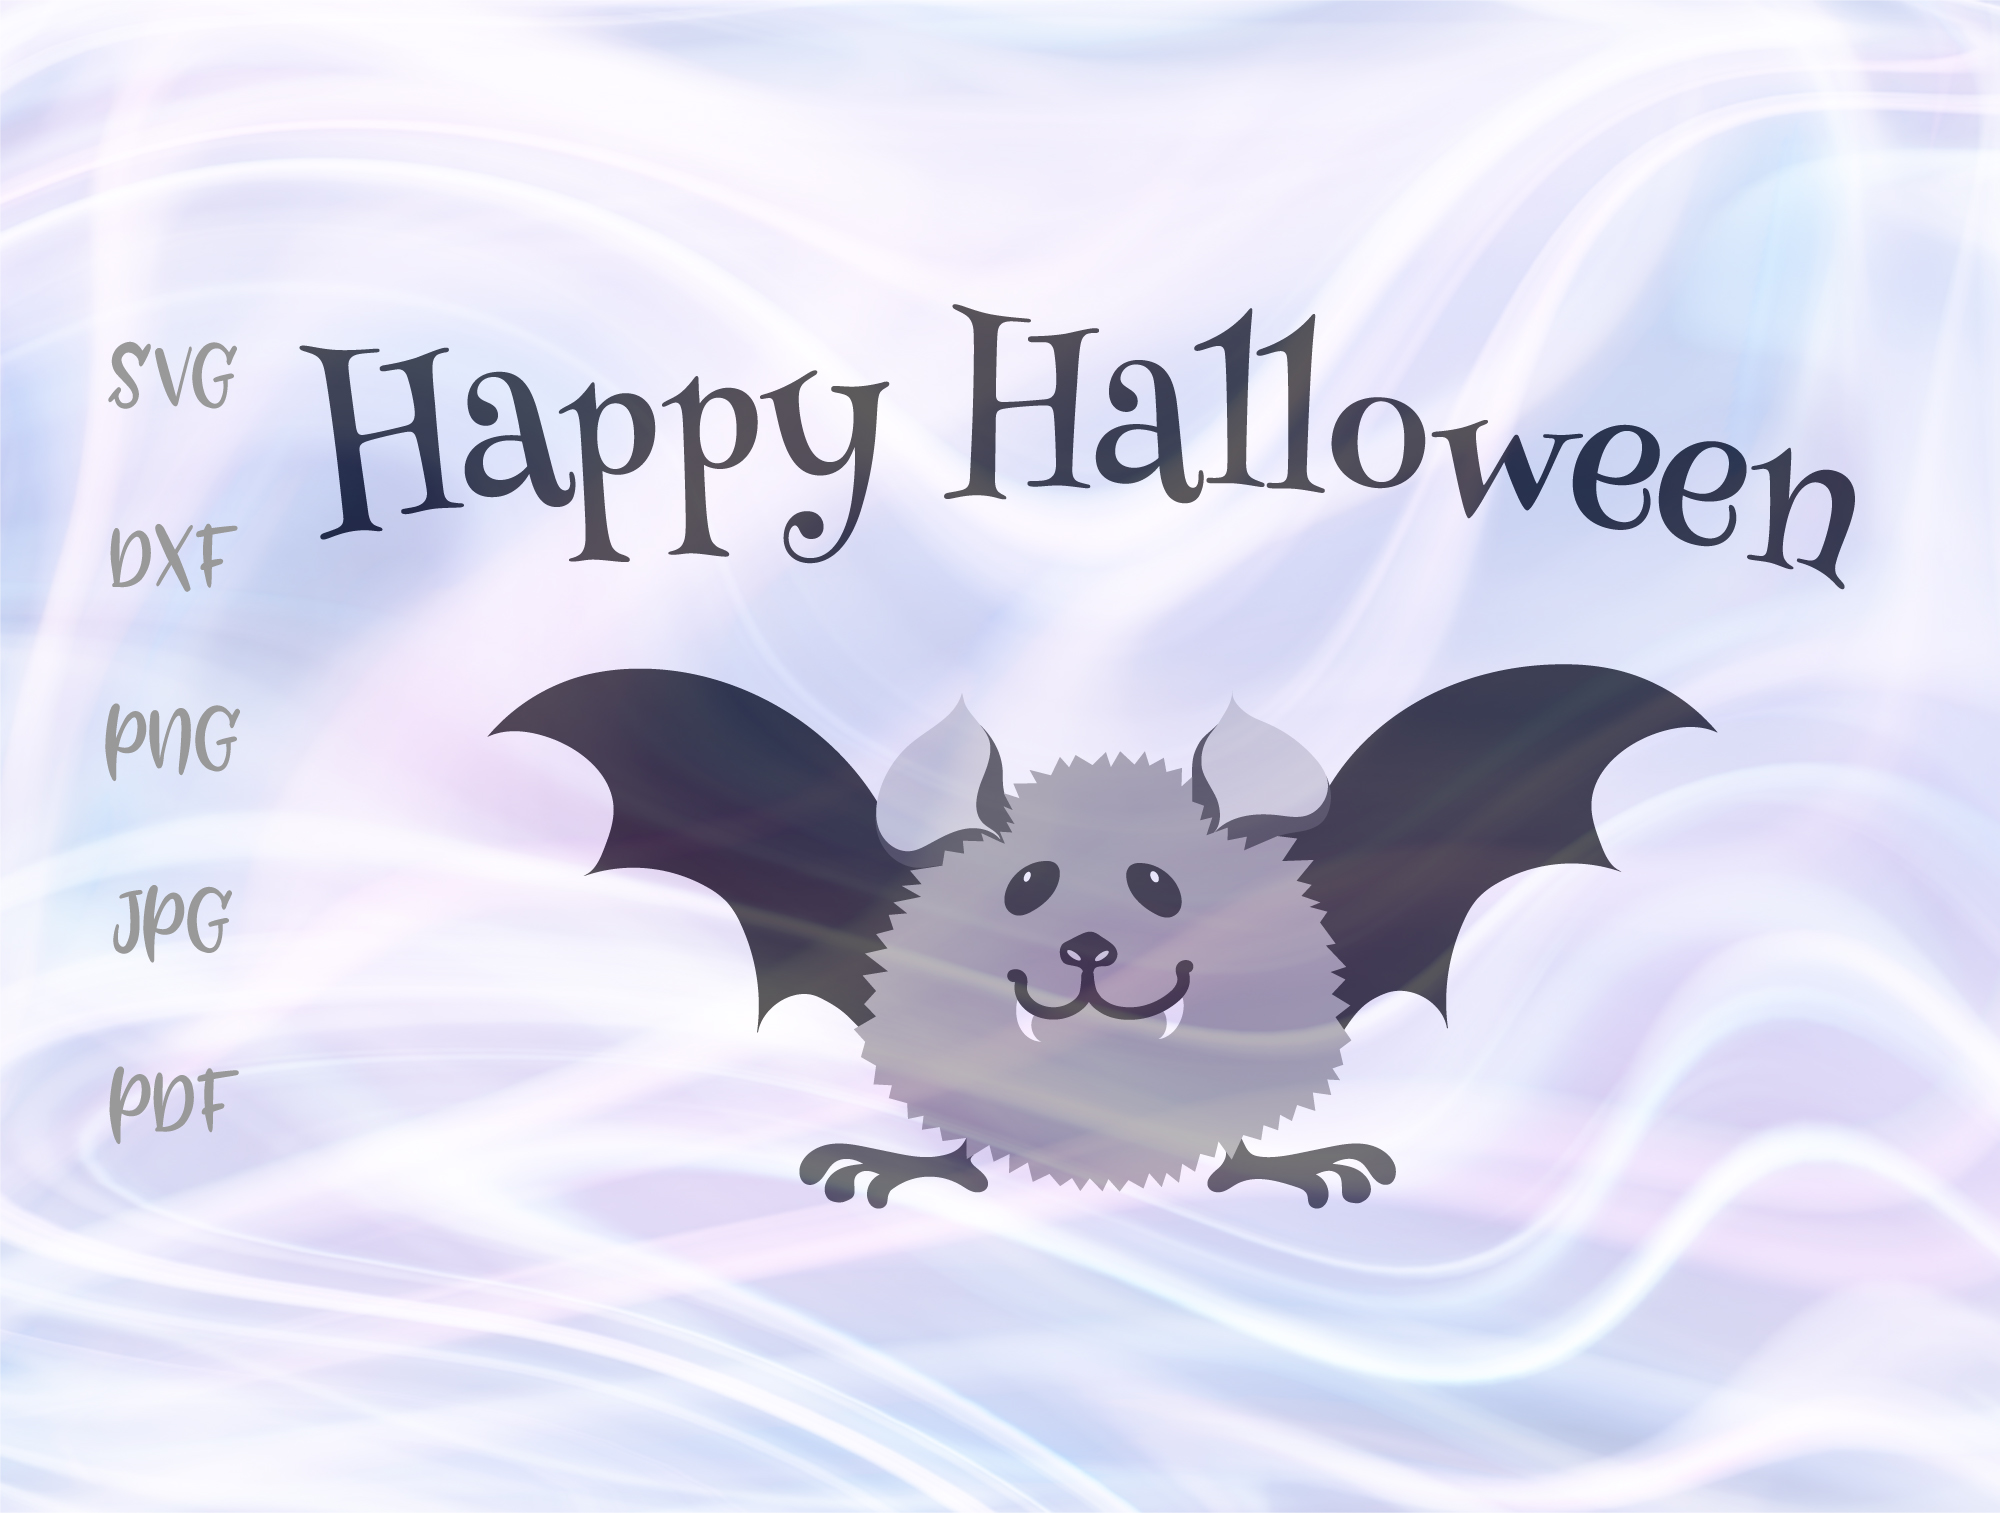 Download Free Happy Halloween Baby Bat Svg Graphic By Digitals By Hanna for Cricut Explore, Silhouette and other cutting machines.